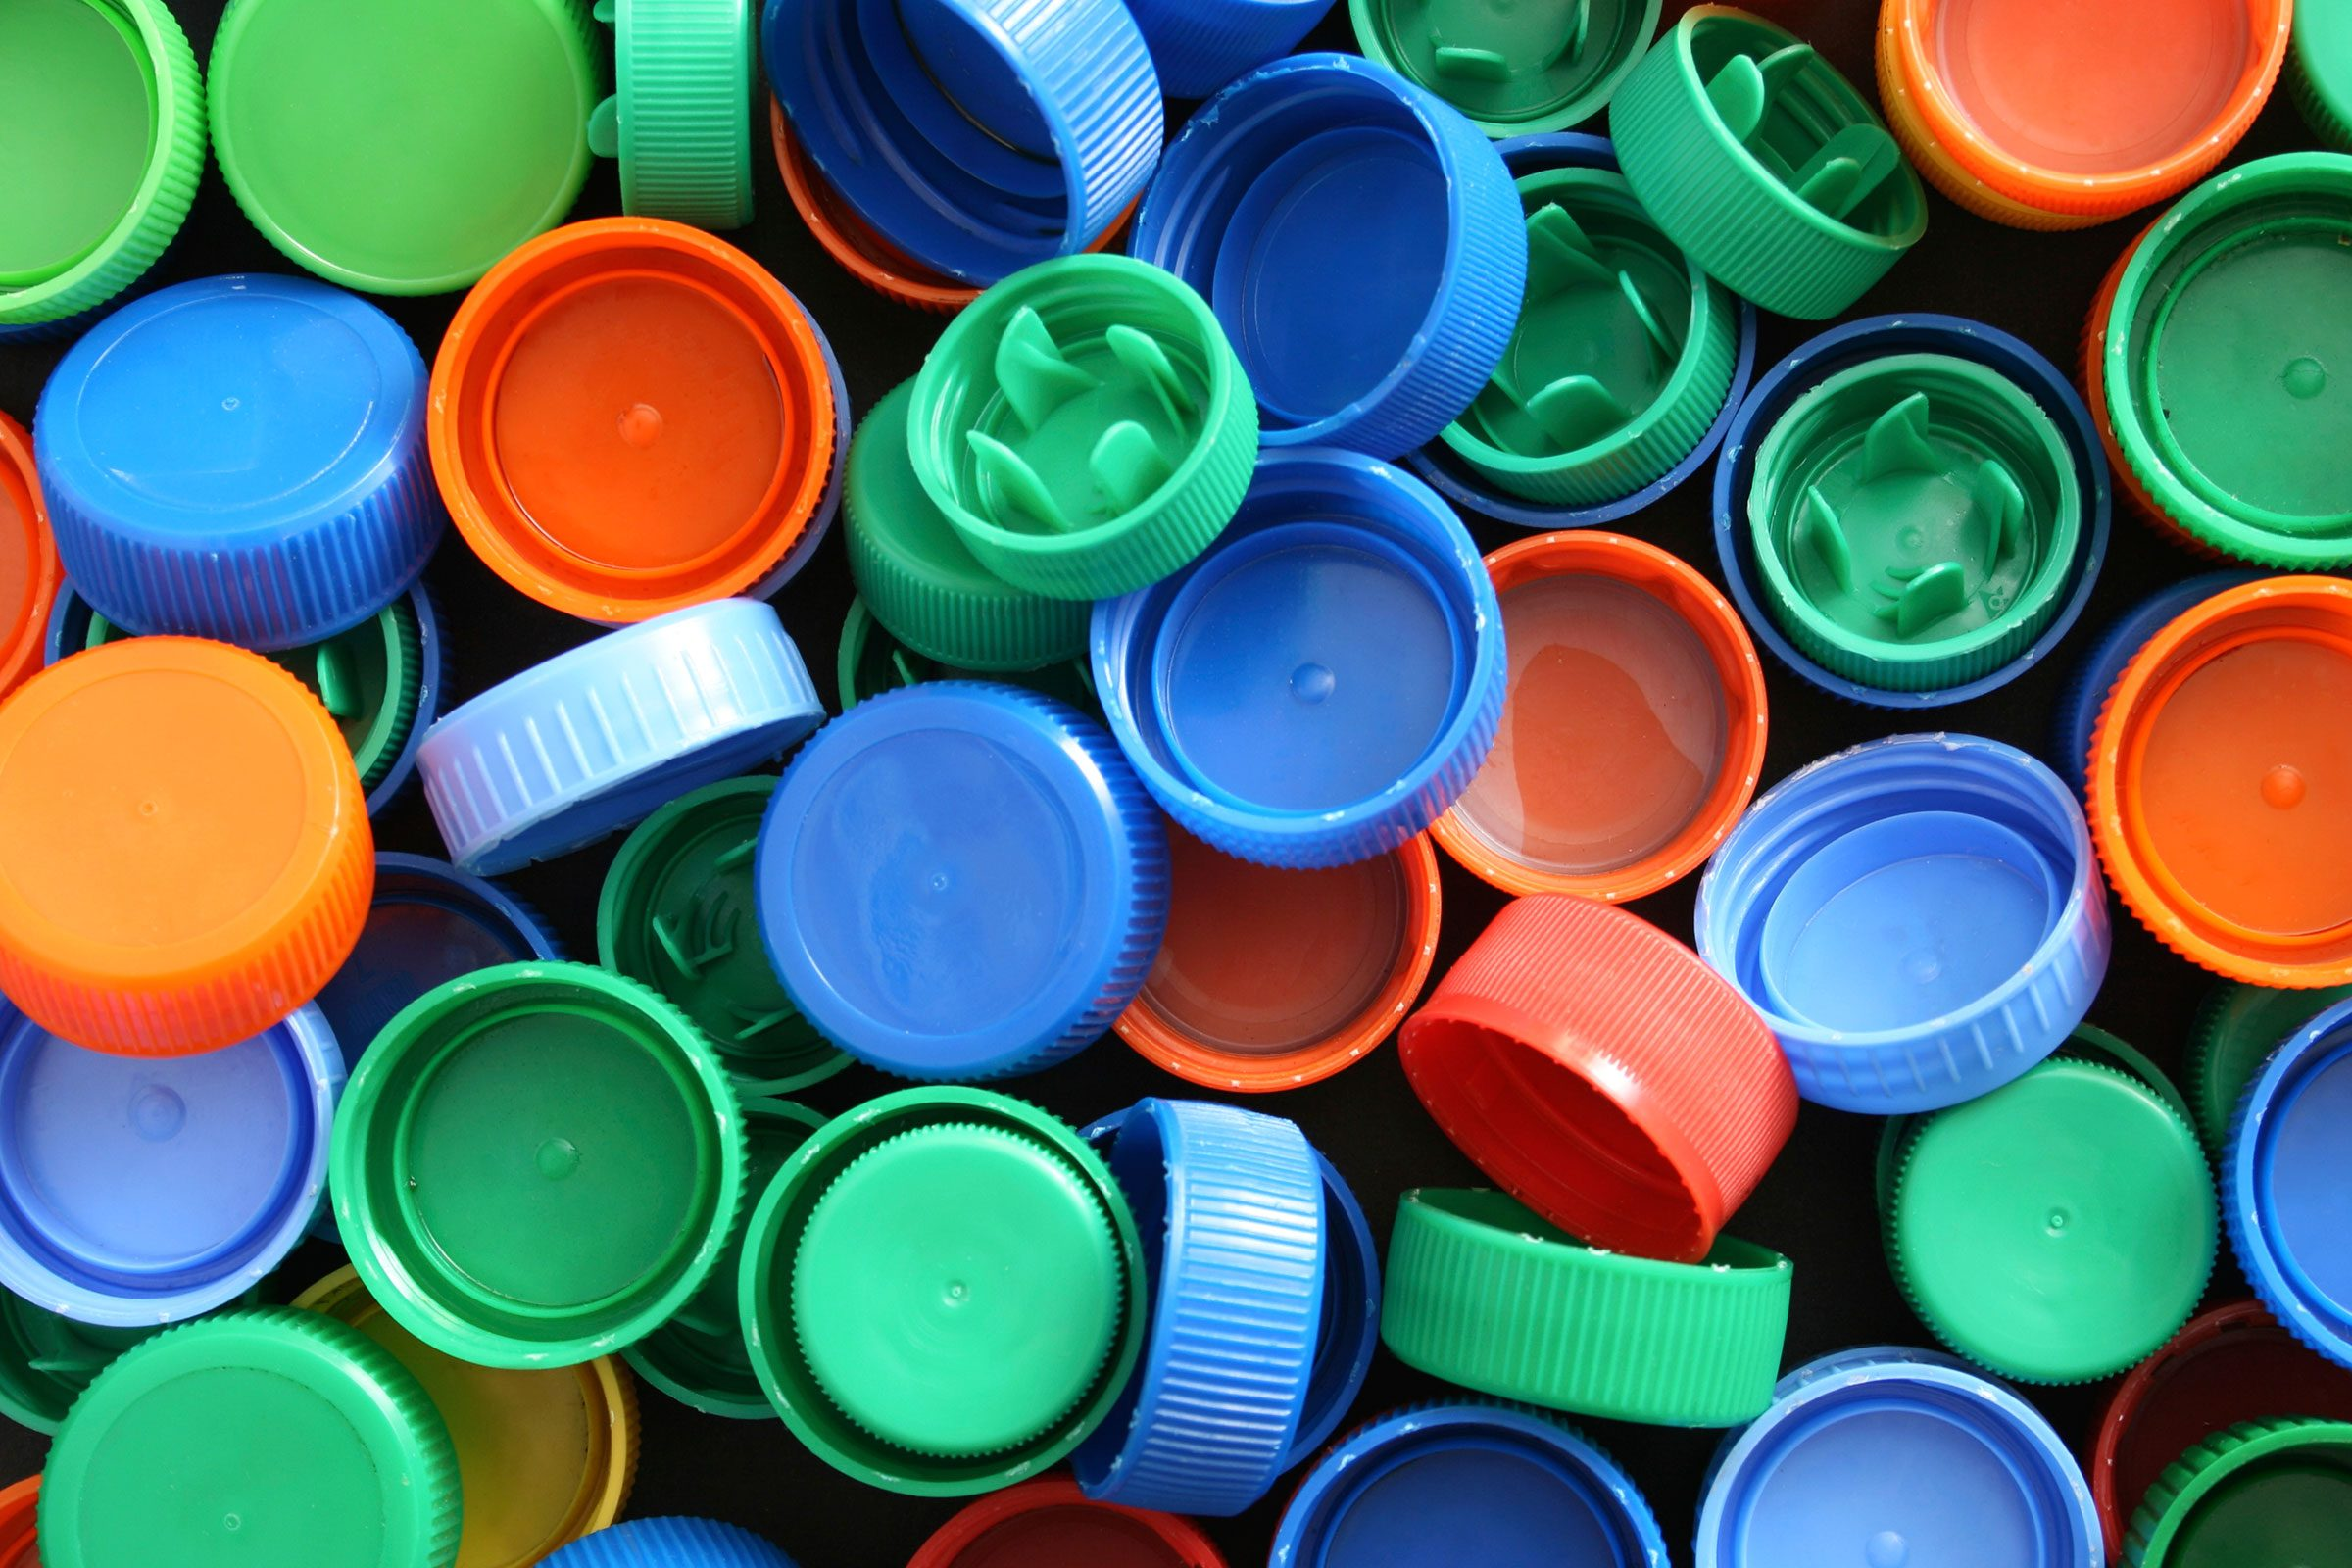 Myth: Leave soda bottle tops on for recycling